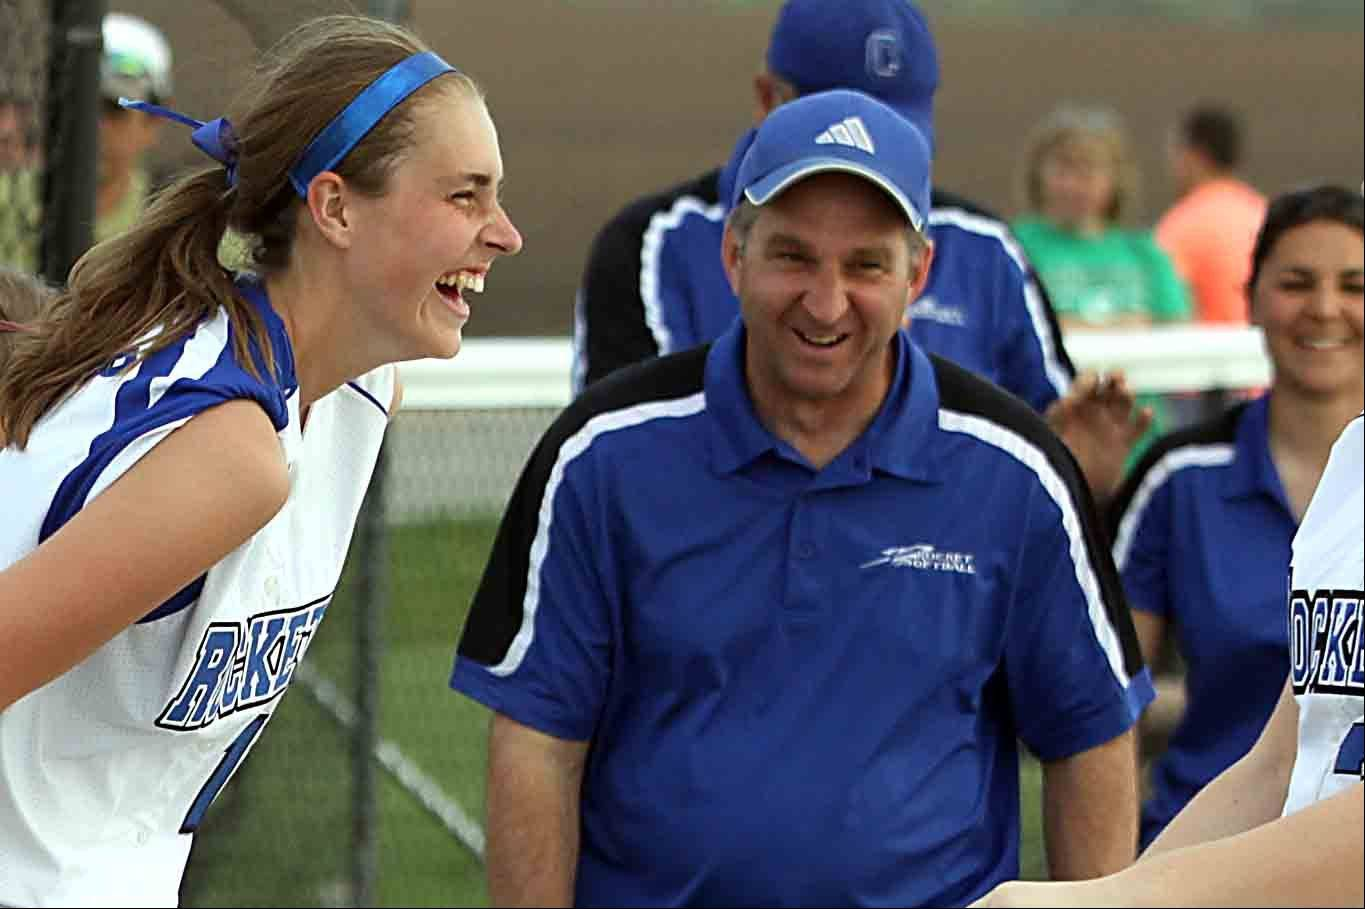 Burlington Central's Rebecca Roscher, left, and head coach Wade Maisto are all smiles after a victory over Hampshire Wednesday at Burlington.